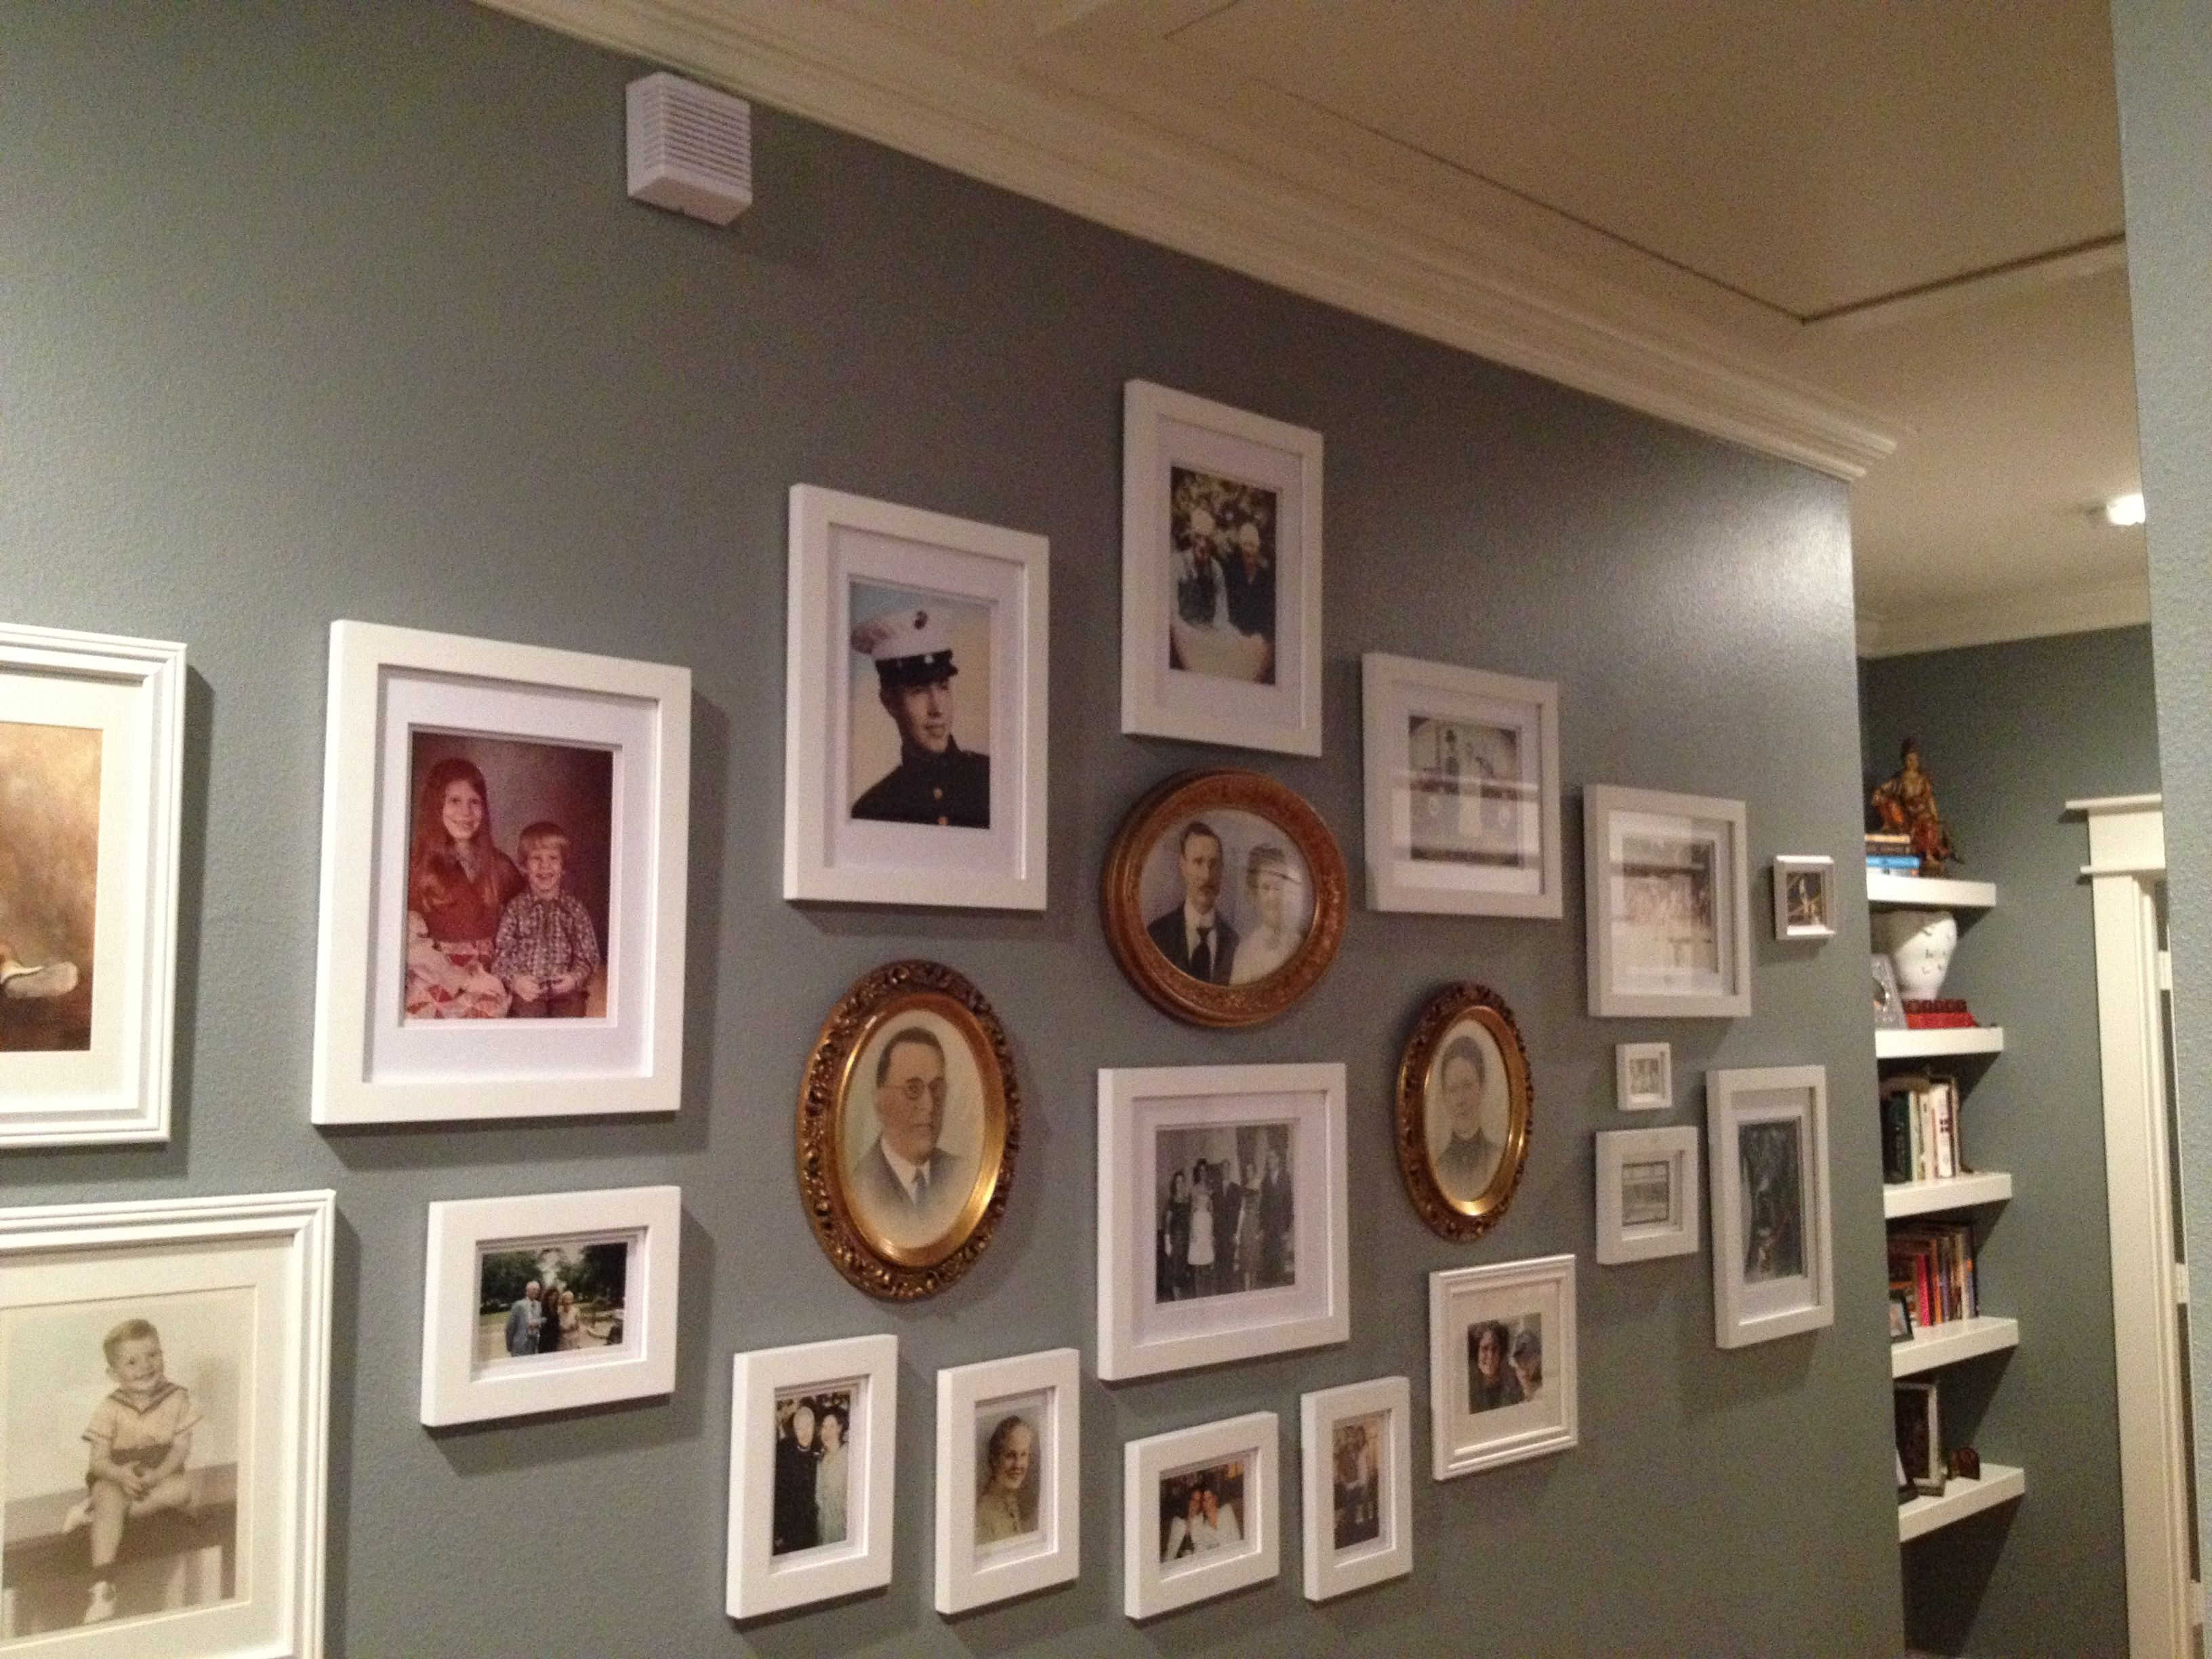 Wall decor using pics that span my lifetime - white frames with white mats mixed with old gold frames...still a work in progress.